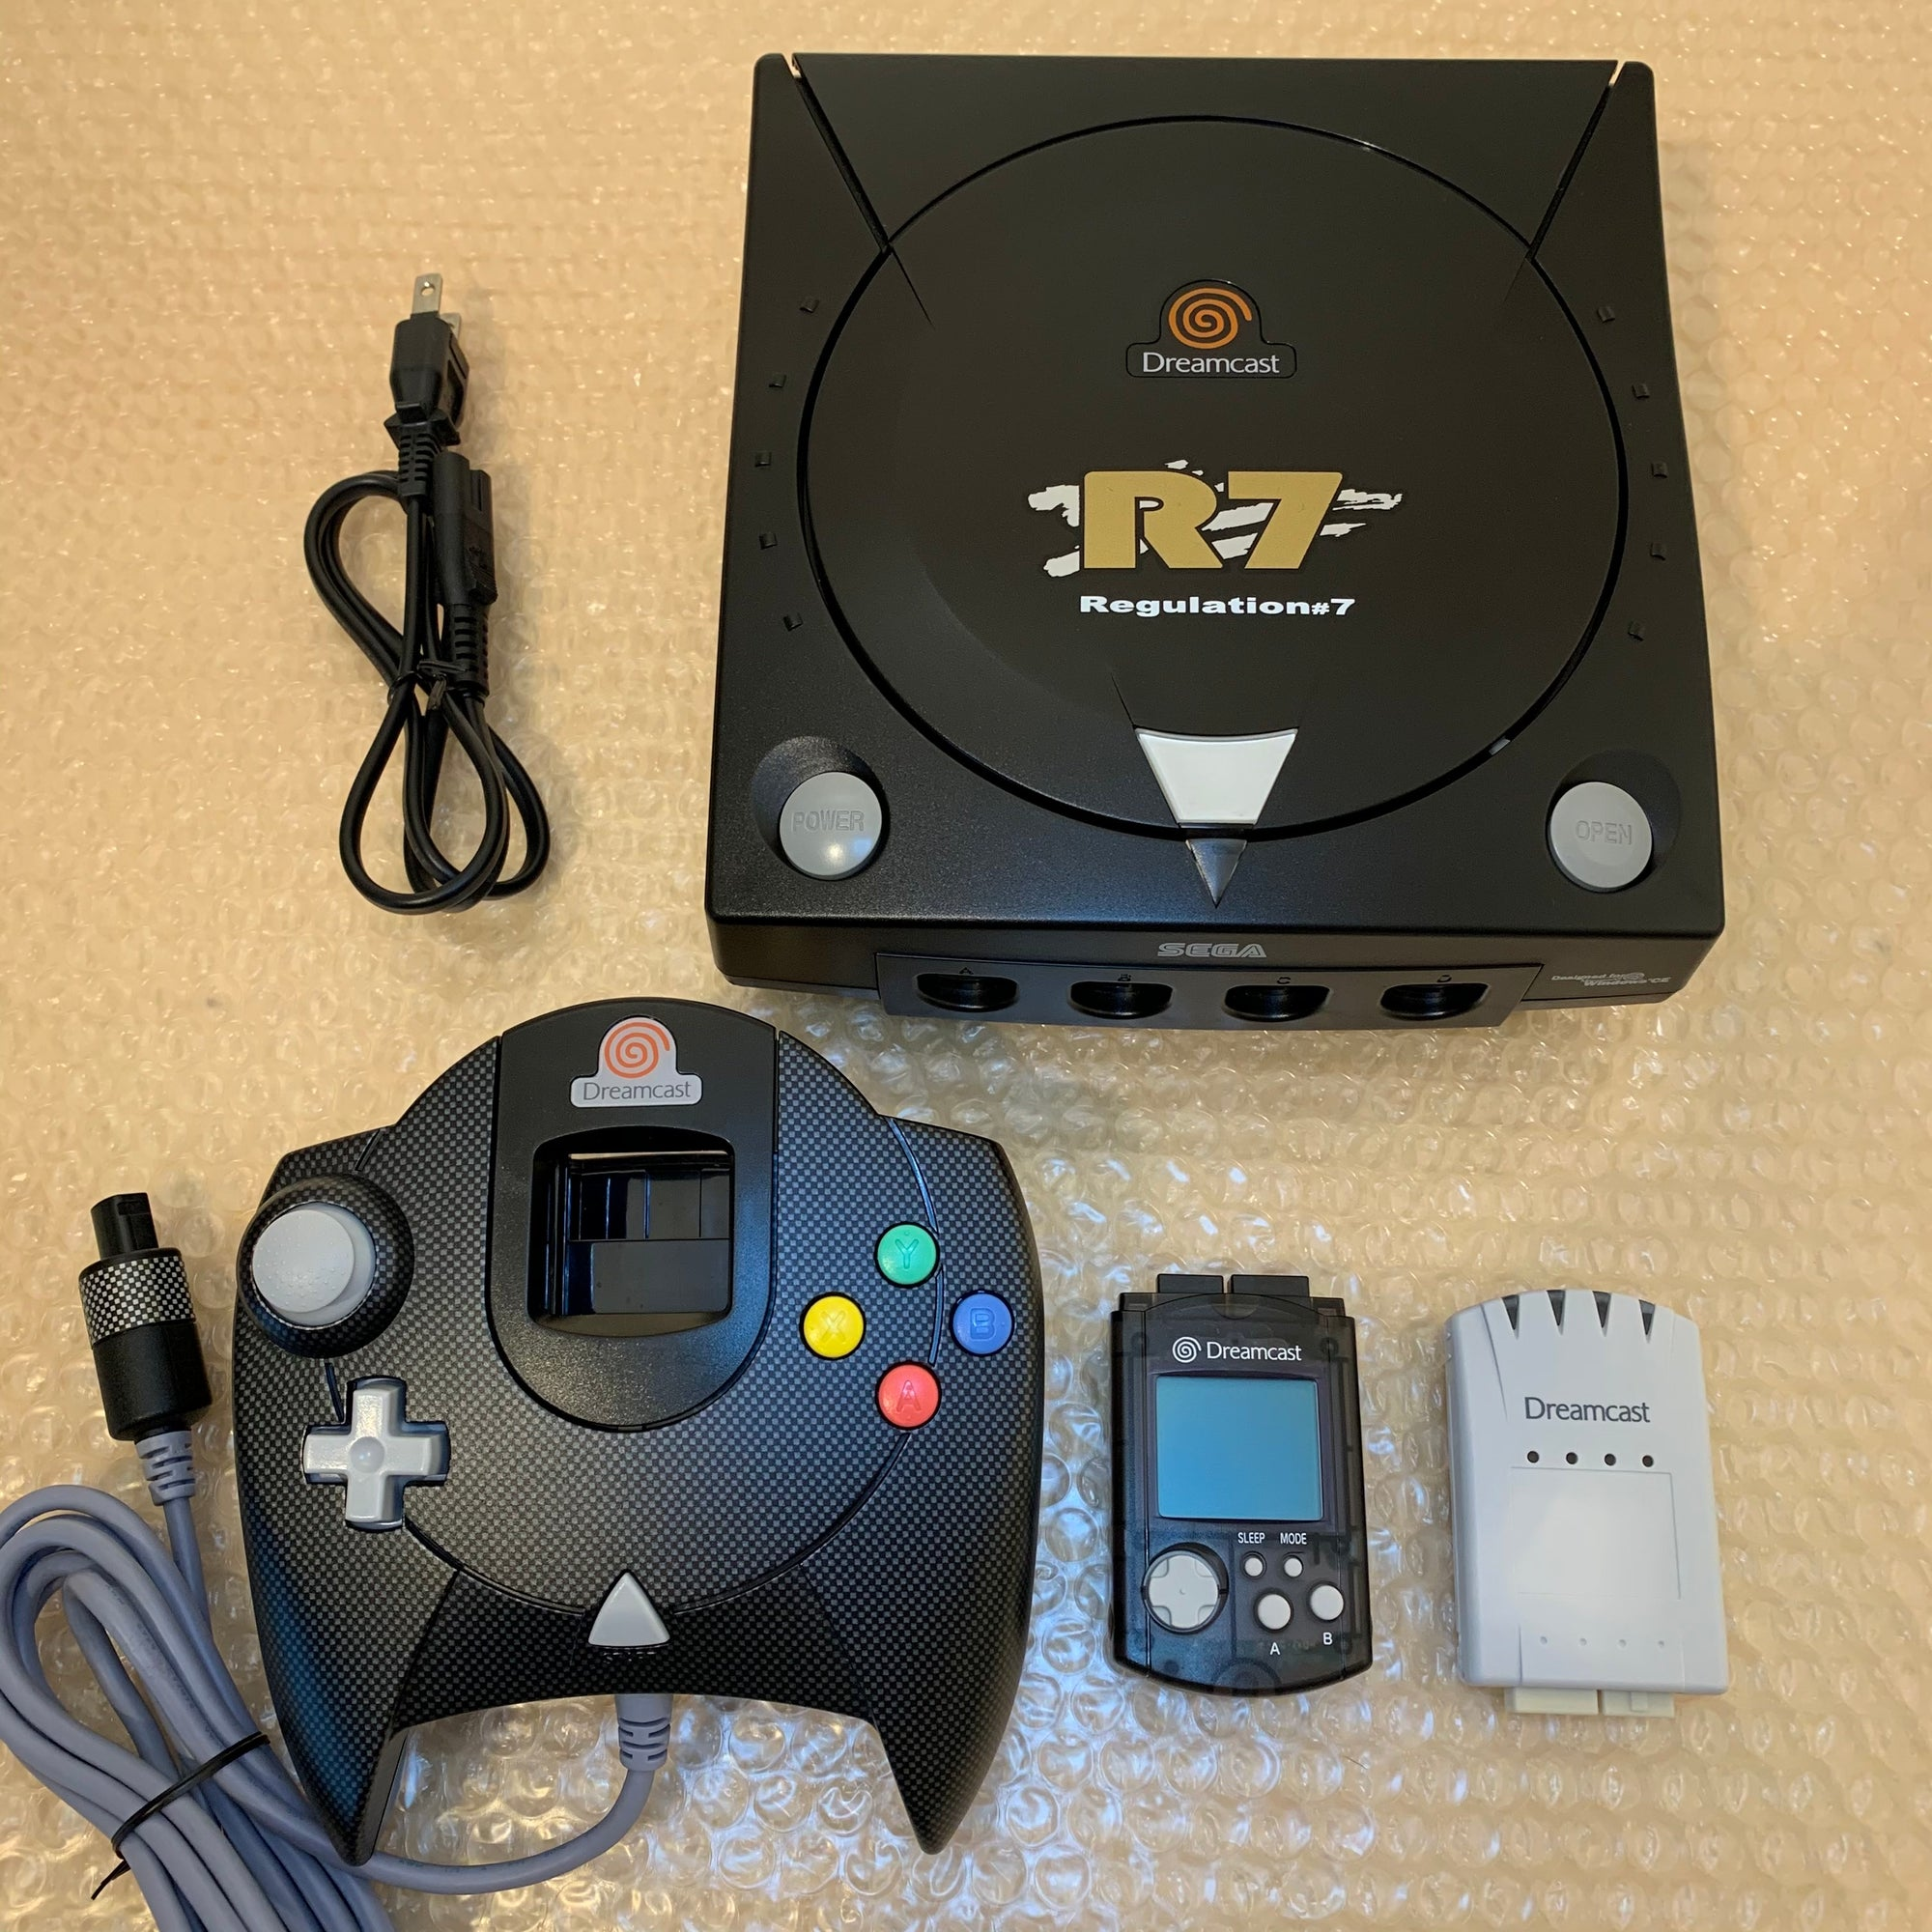 Dreamcast R7 set with DCDigital (DCHDMI) and GDEMU